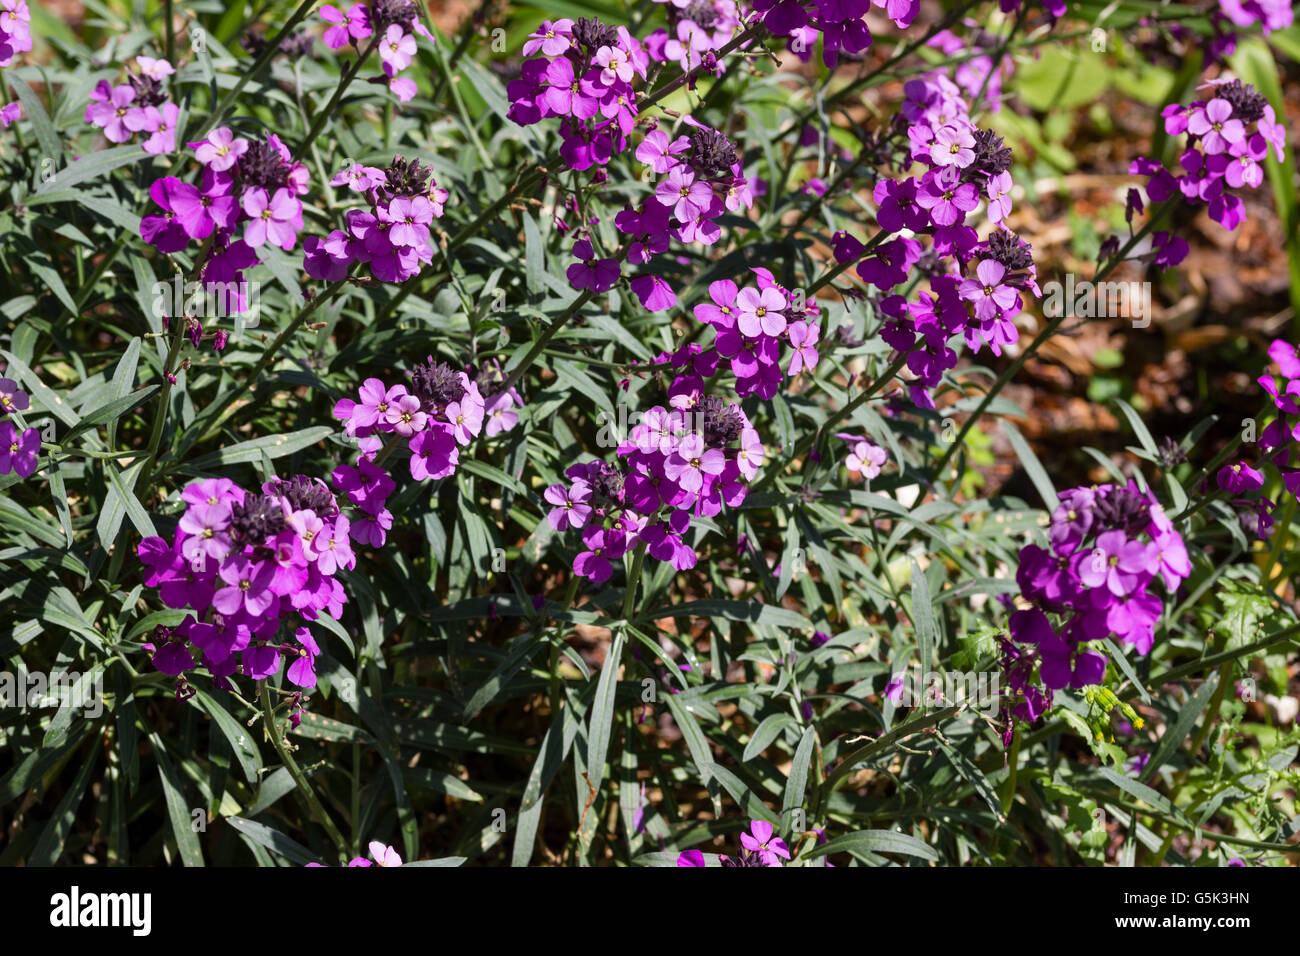 Light Purple Flowers Of The Hardy Long Flowering Perennial Stock